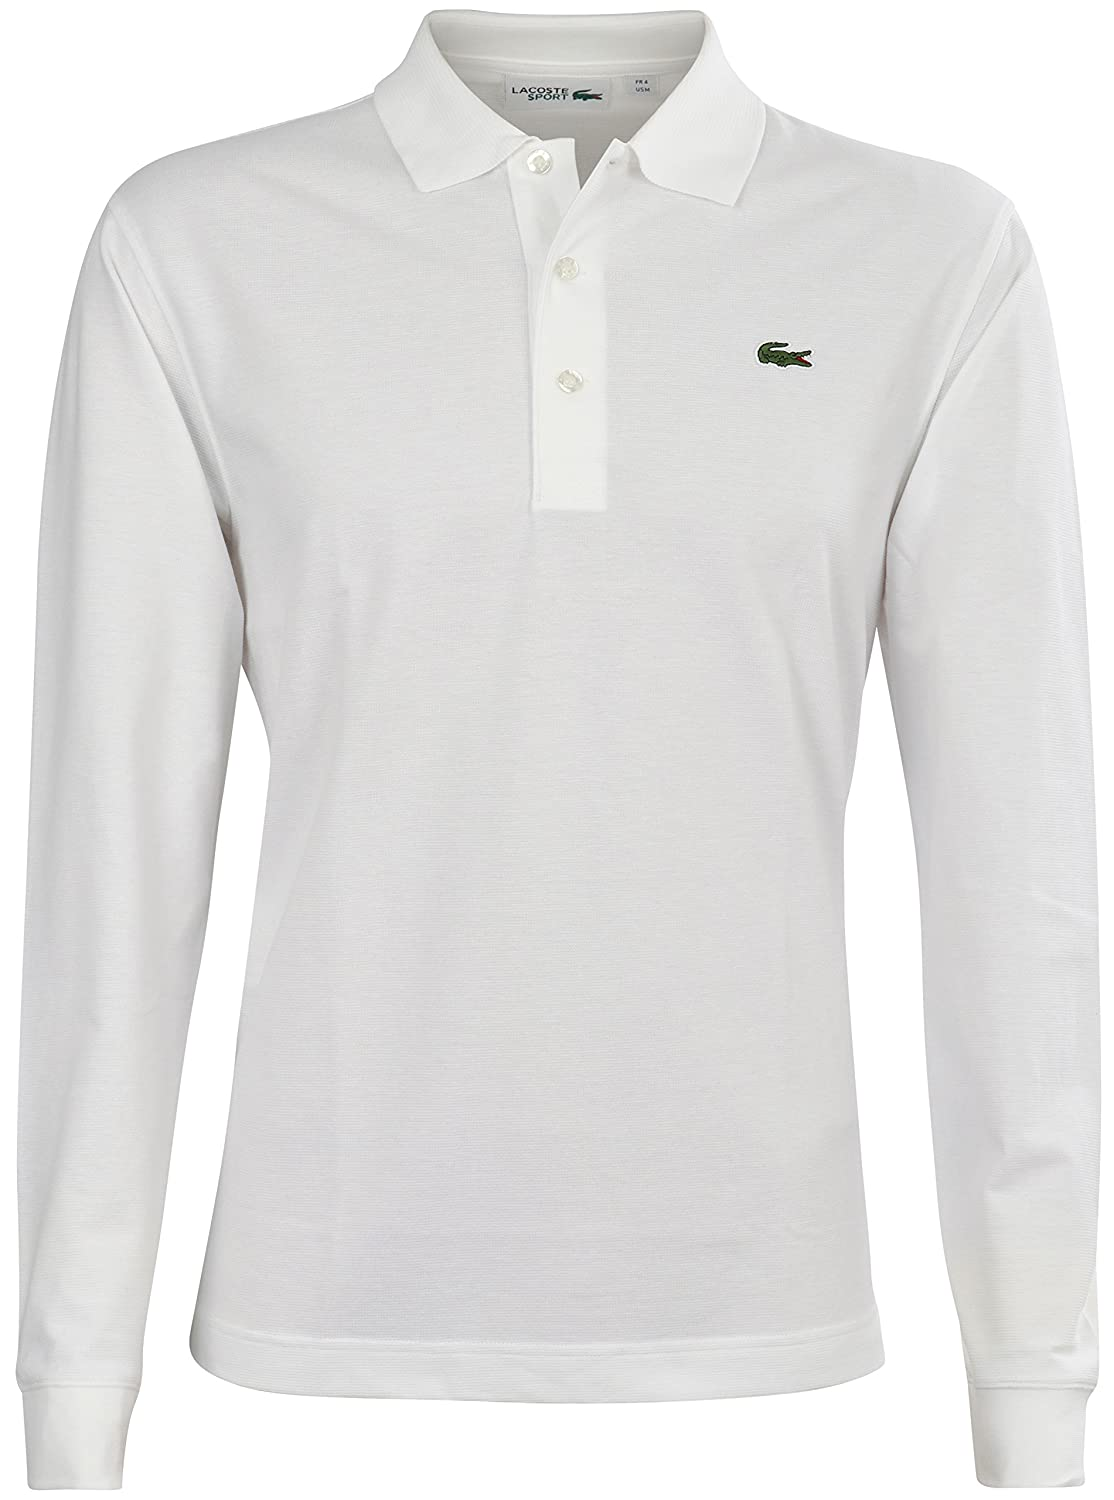 d6a85a9a Lacoste Men's L1330 Long Sleeve Polo Shirt: Amazon.co.uk: Clothing